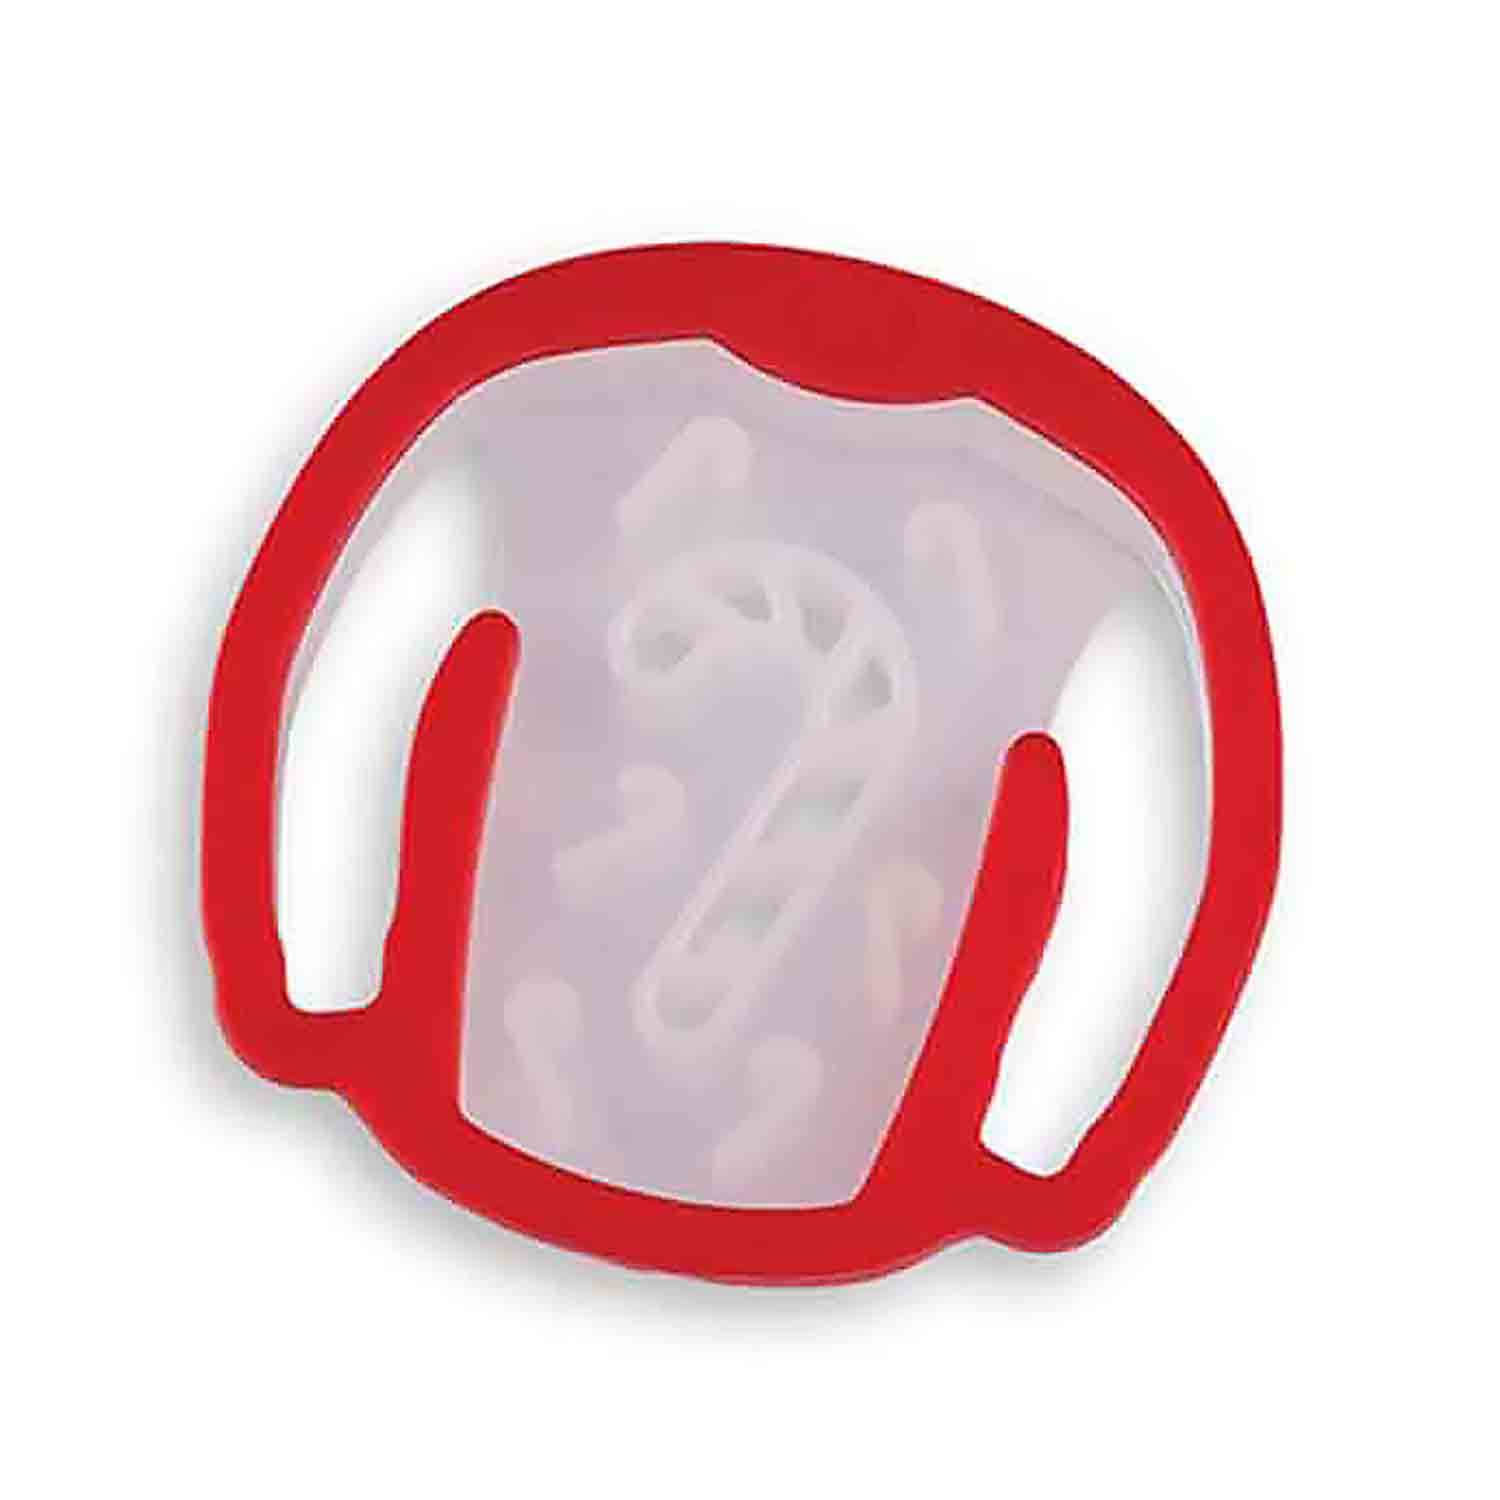 Candy Cane Ugly Sweater Cookie Cutter Stamp